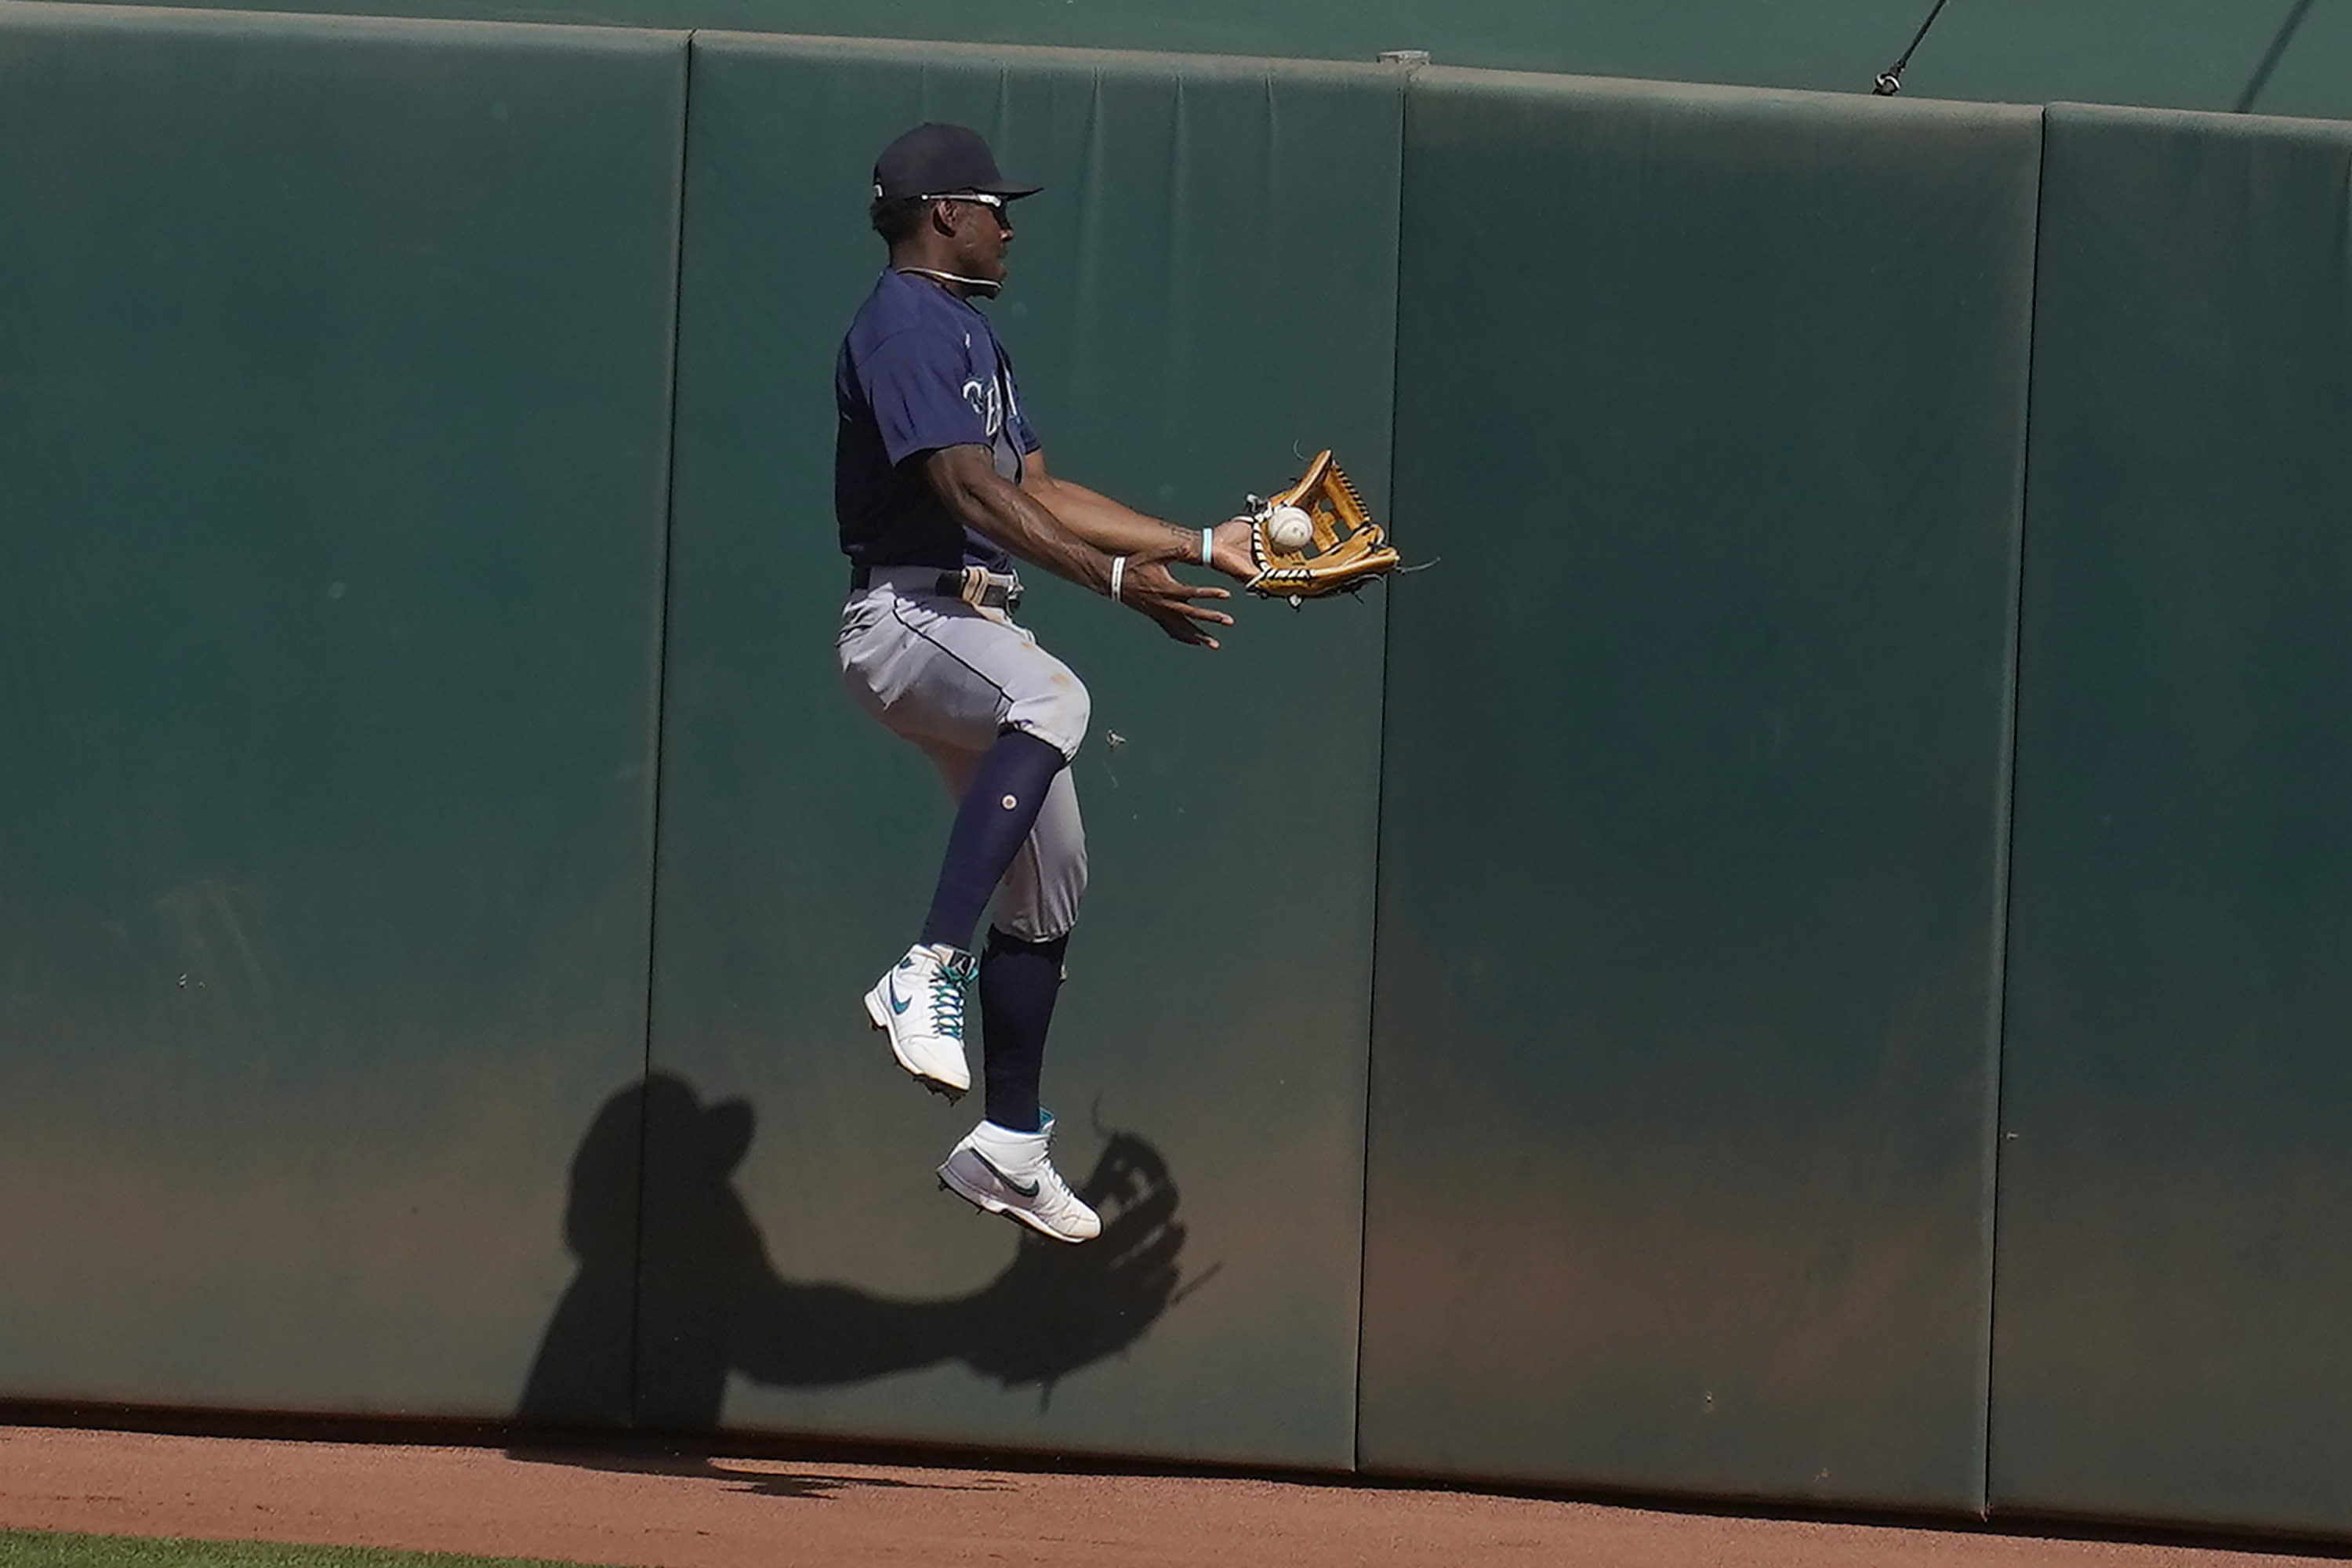 Seattle Mariners center fielder Kyle Lewis cannot catch a two-run double hit by Oakland Athletics' Mark Canha during the seventh inning of a baseball game in Oakland, Calif., Sunday, Sept. 27, 2020. (AP Photo/Jeff Chiu)